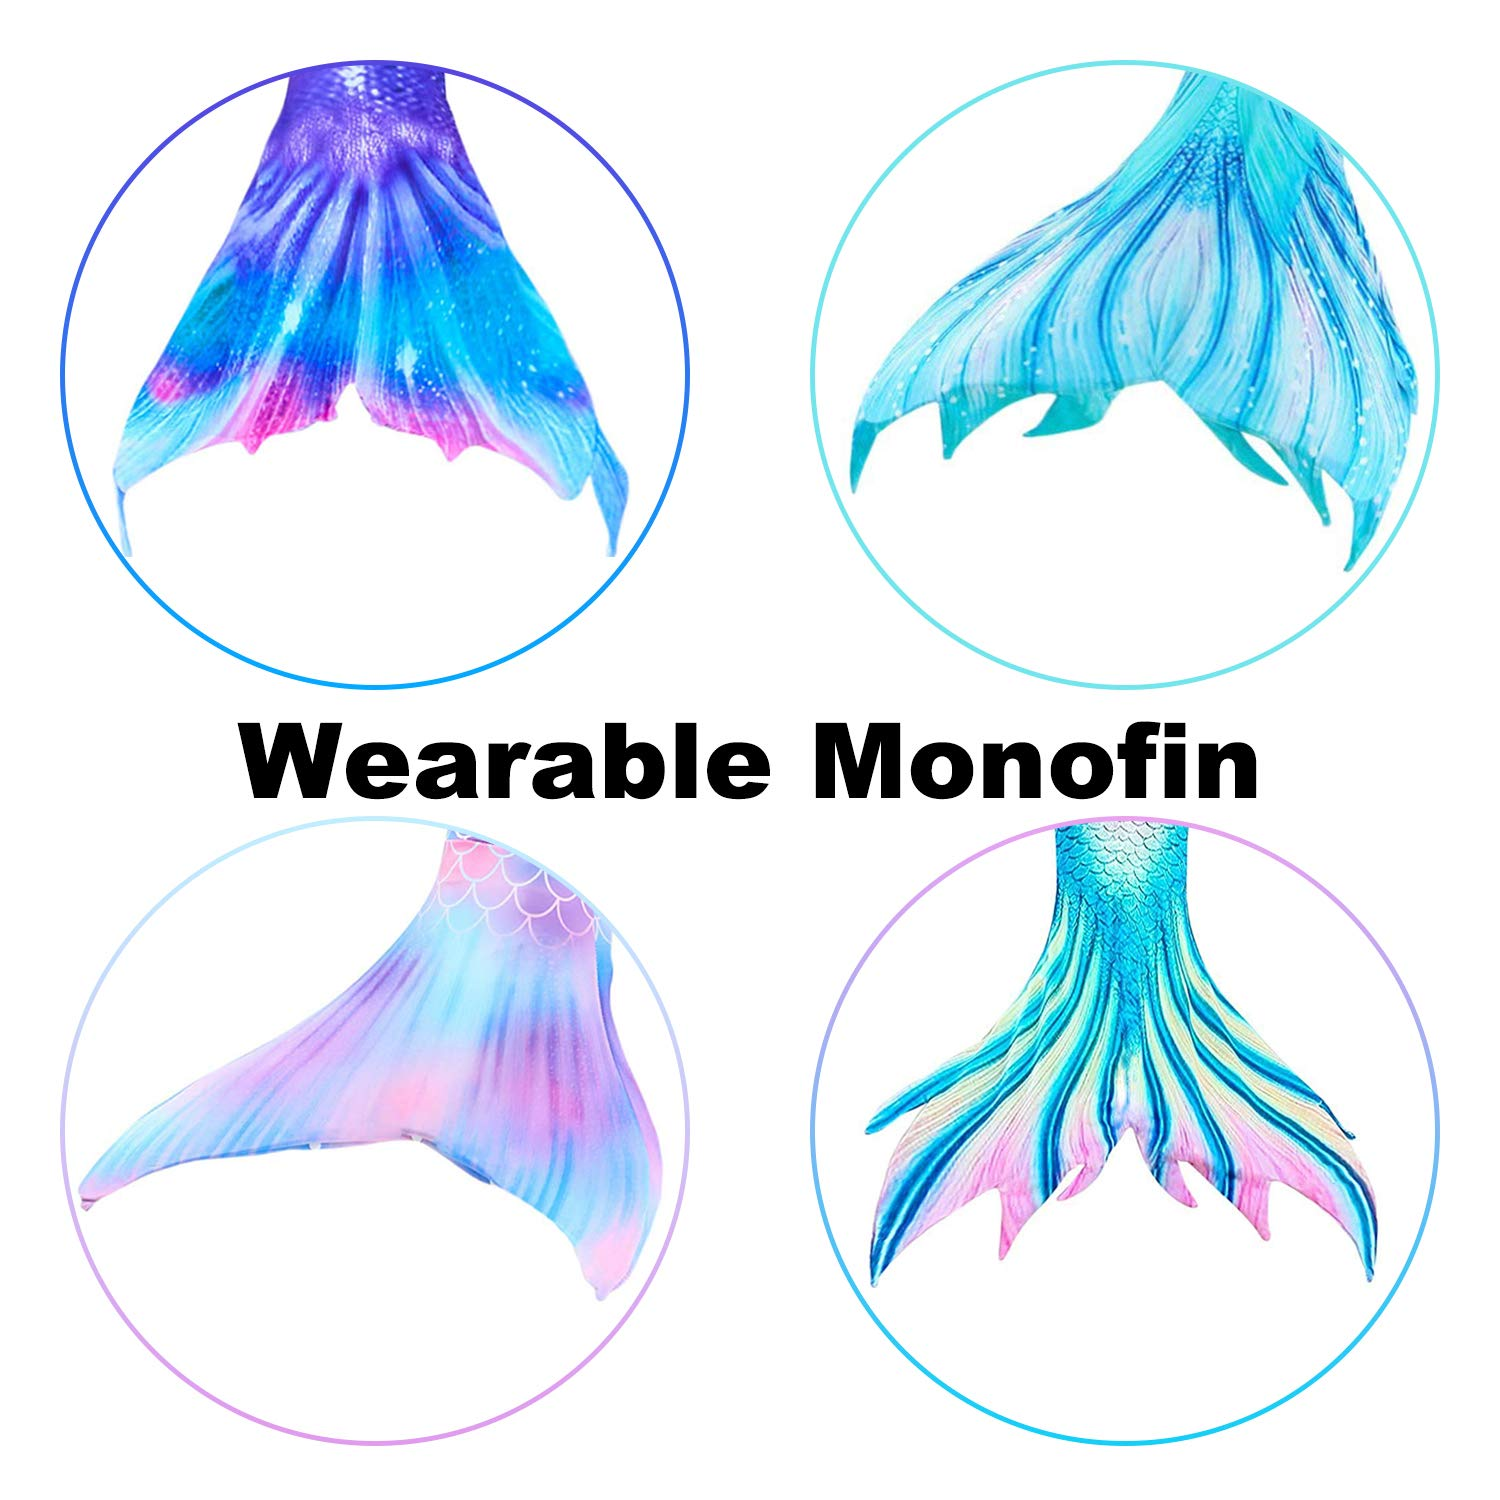 Garlagy 3 Pcs Girls Swimsuit Mermaid Tails for Swimming Bikini Set Bathing Suit Swimmable Can Add Monofin for 3-14Y (One Size, Monofin (Wearable))